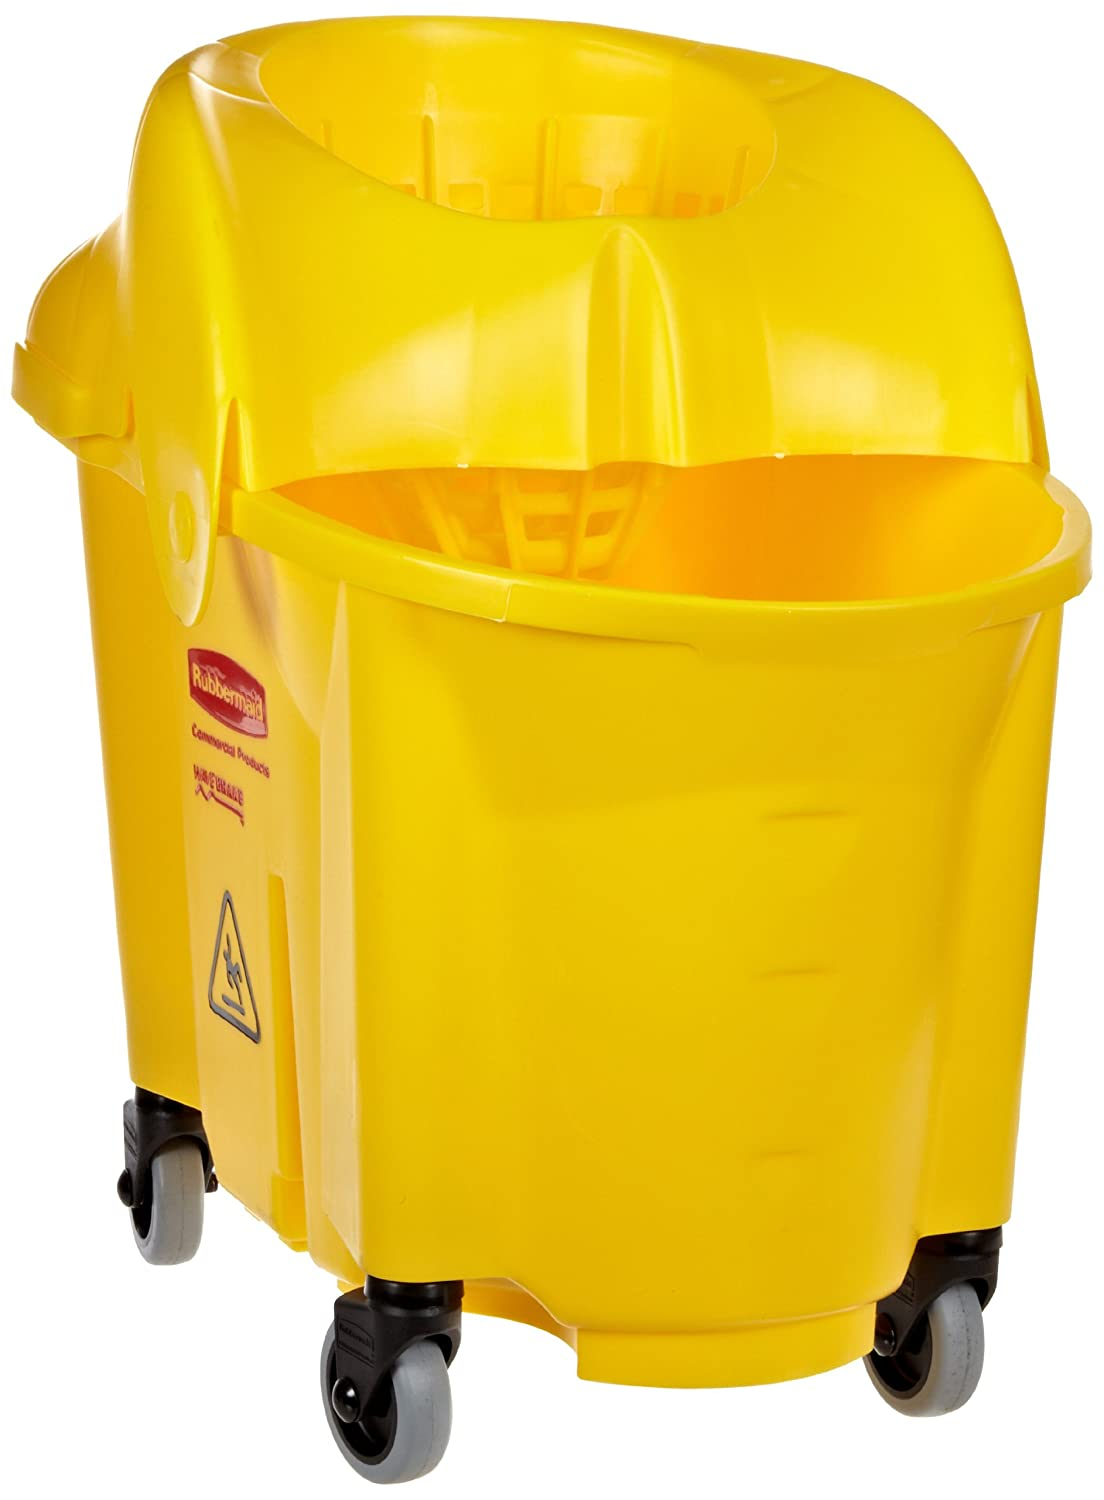 Rubbermaid Commercial WaveBrake 2.0 35 QT institution Mop Bucket and Wringer, Yellow (FG759088YEL)